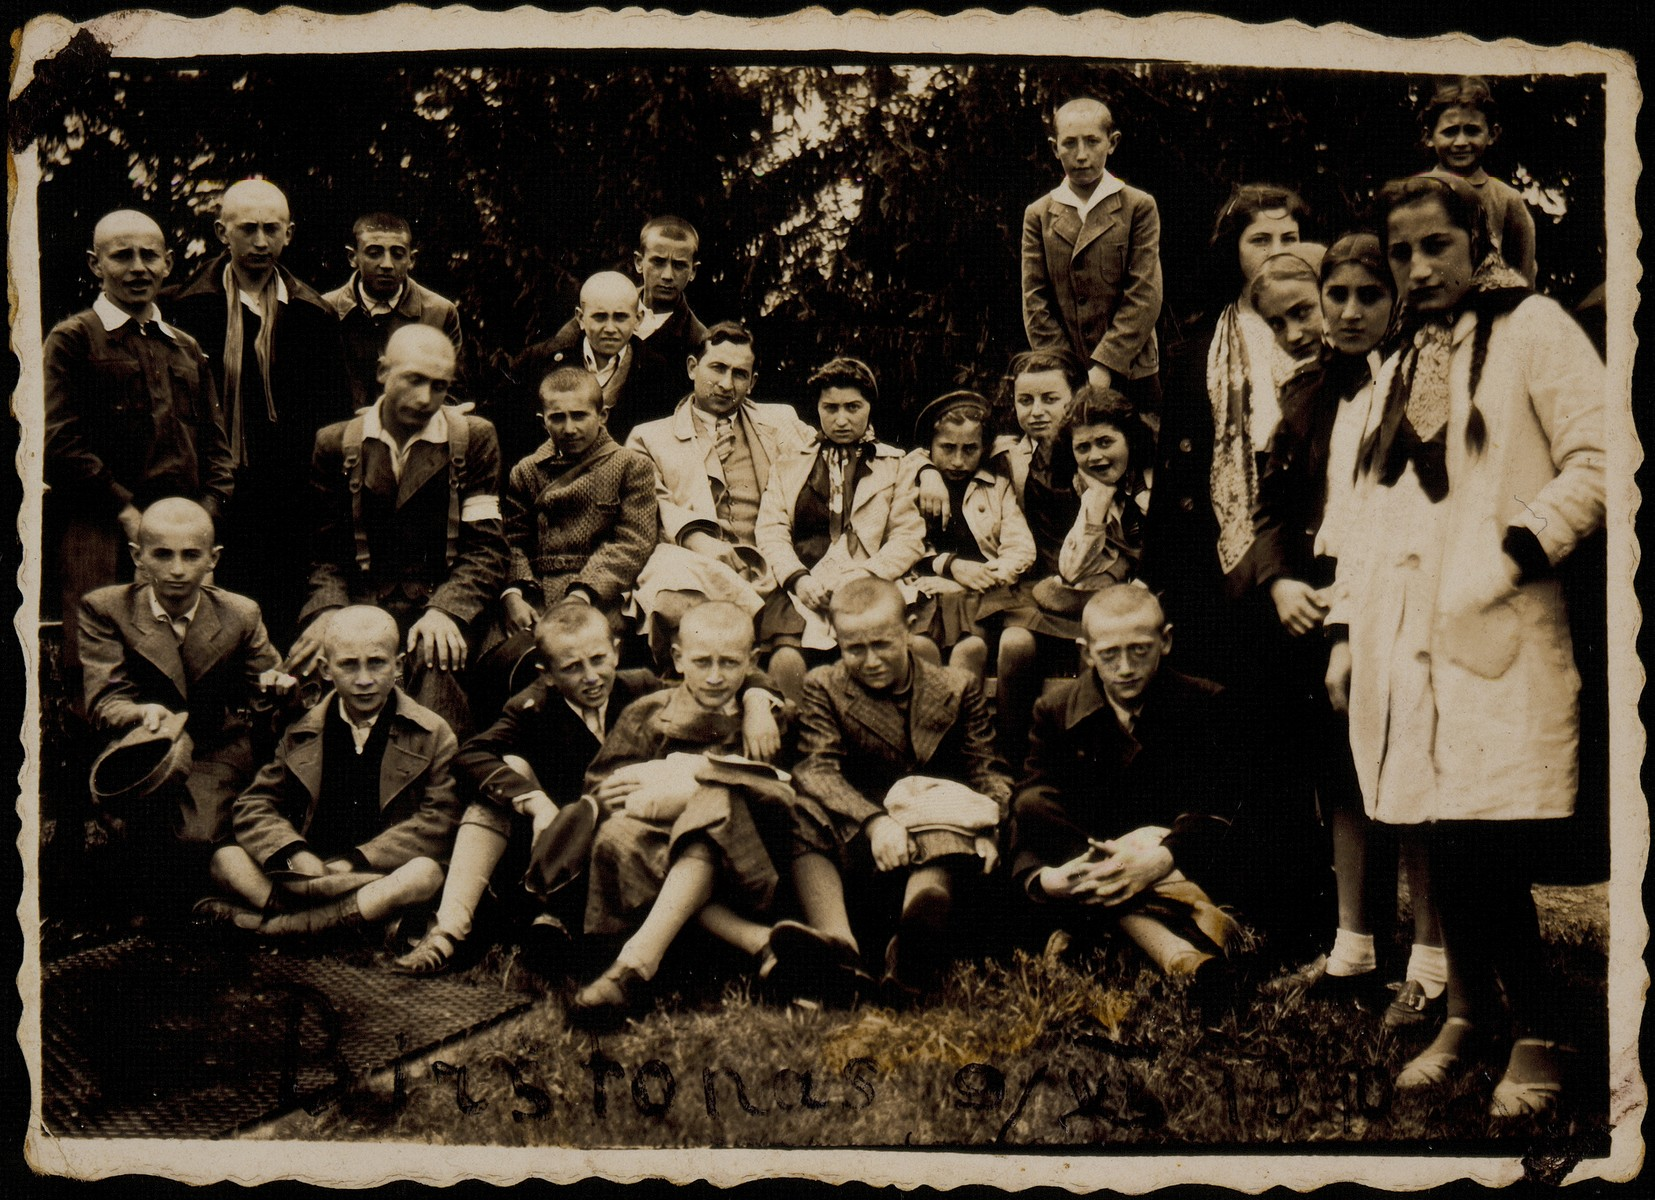 Hebrew School students visit historical sites in Lithuania in 1940.    The teacher Gabi is seated in the center. Sitting on the ground (right to left): Moshe Bastunski, Moshe Kaplan. To the left (sitting on his knees) is Elisha Koppelman. All the students and teachers perished during the Holocaust.